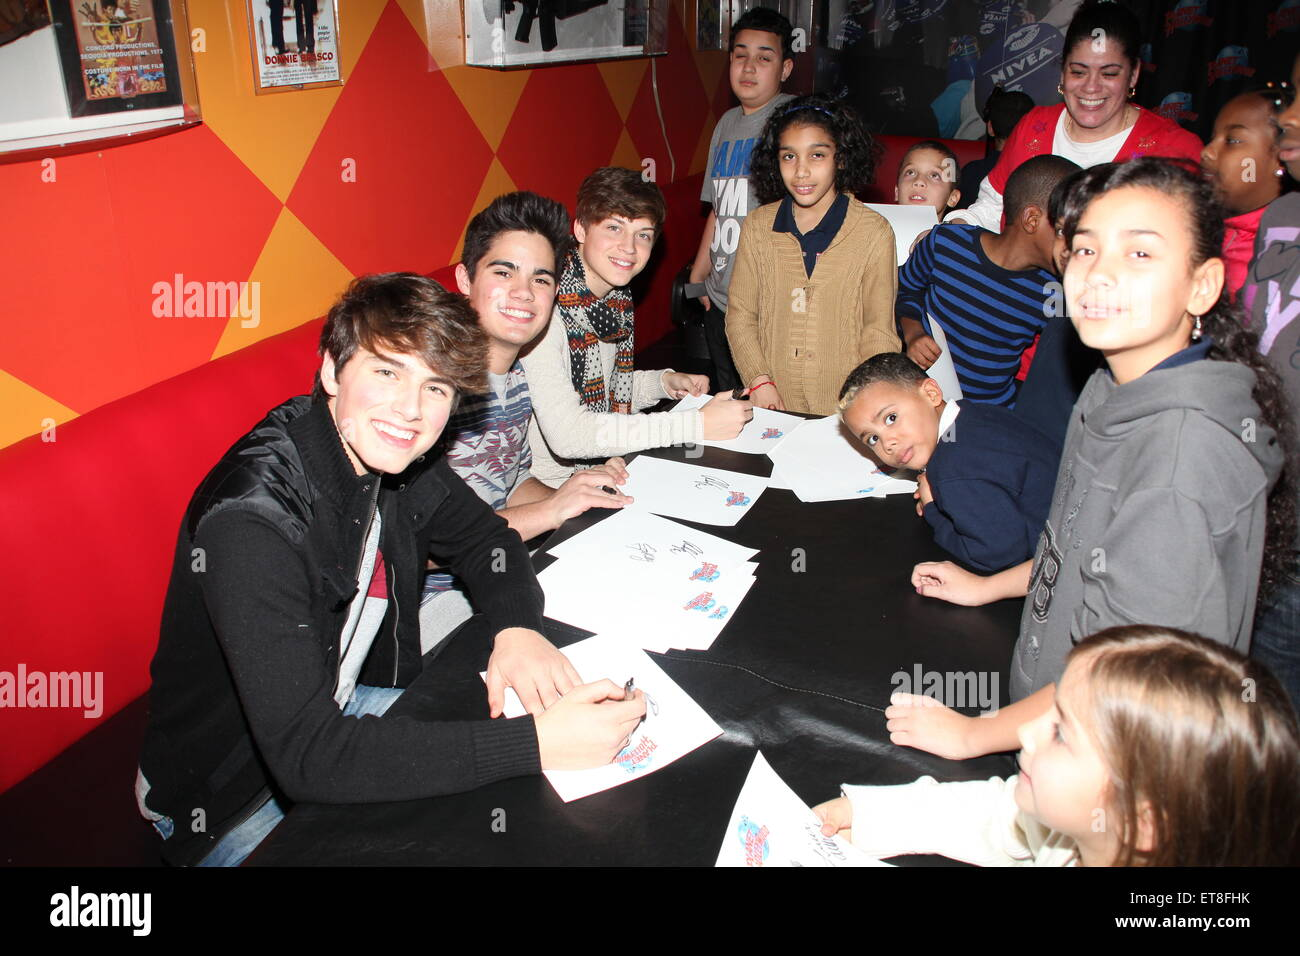 Ricky garcia emery kelly liam stock photos ricky garcia emery planet hollywood hosts a forever in your mind meet and greet with 36 children from a m4hsunfo